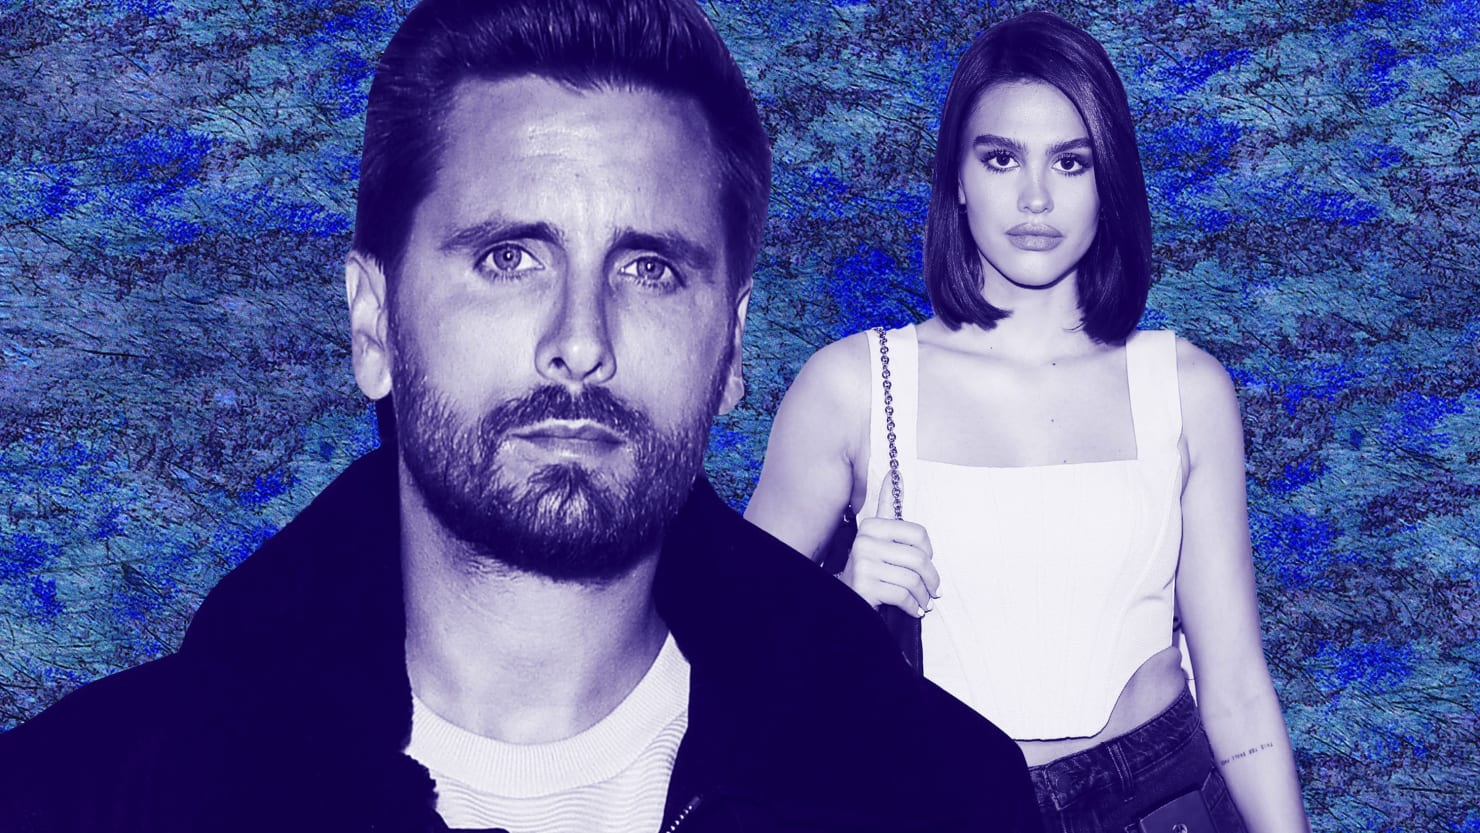 Scott Disick Is Dating Another Teenager. And People Are Crying Foul.